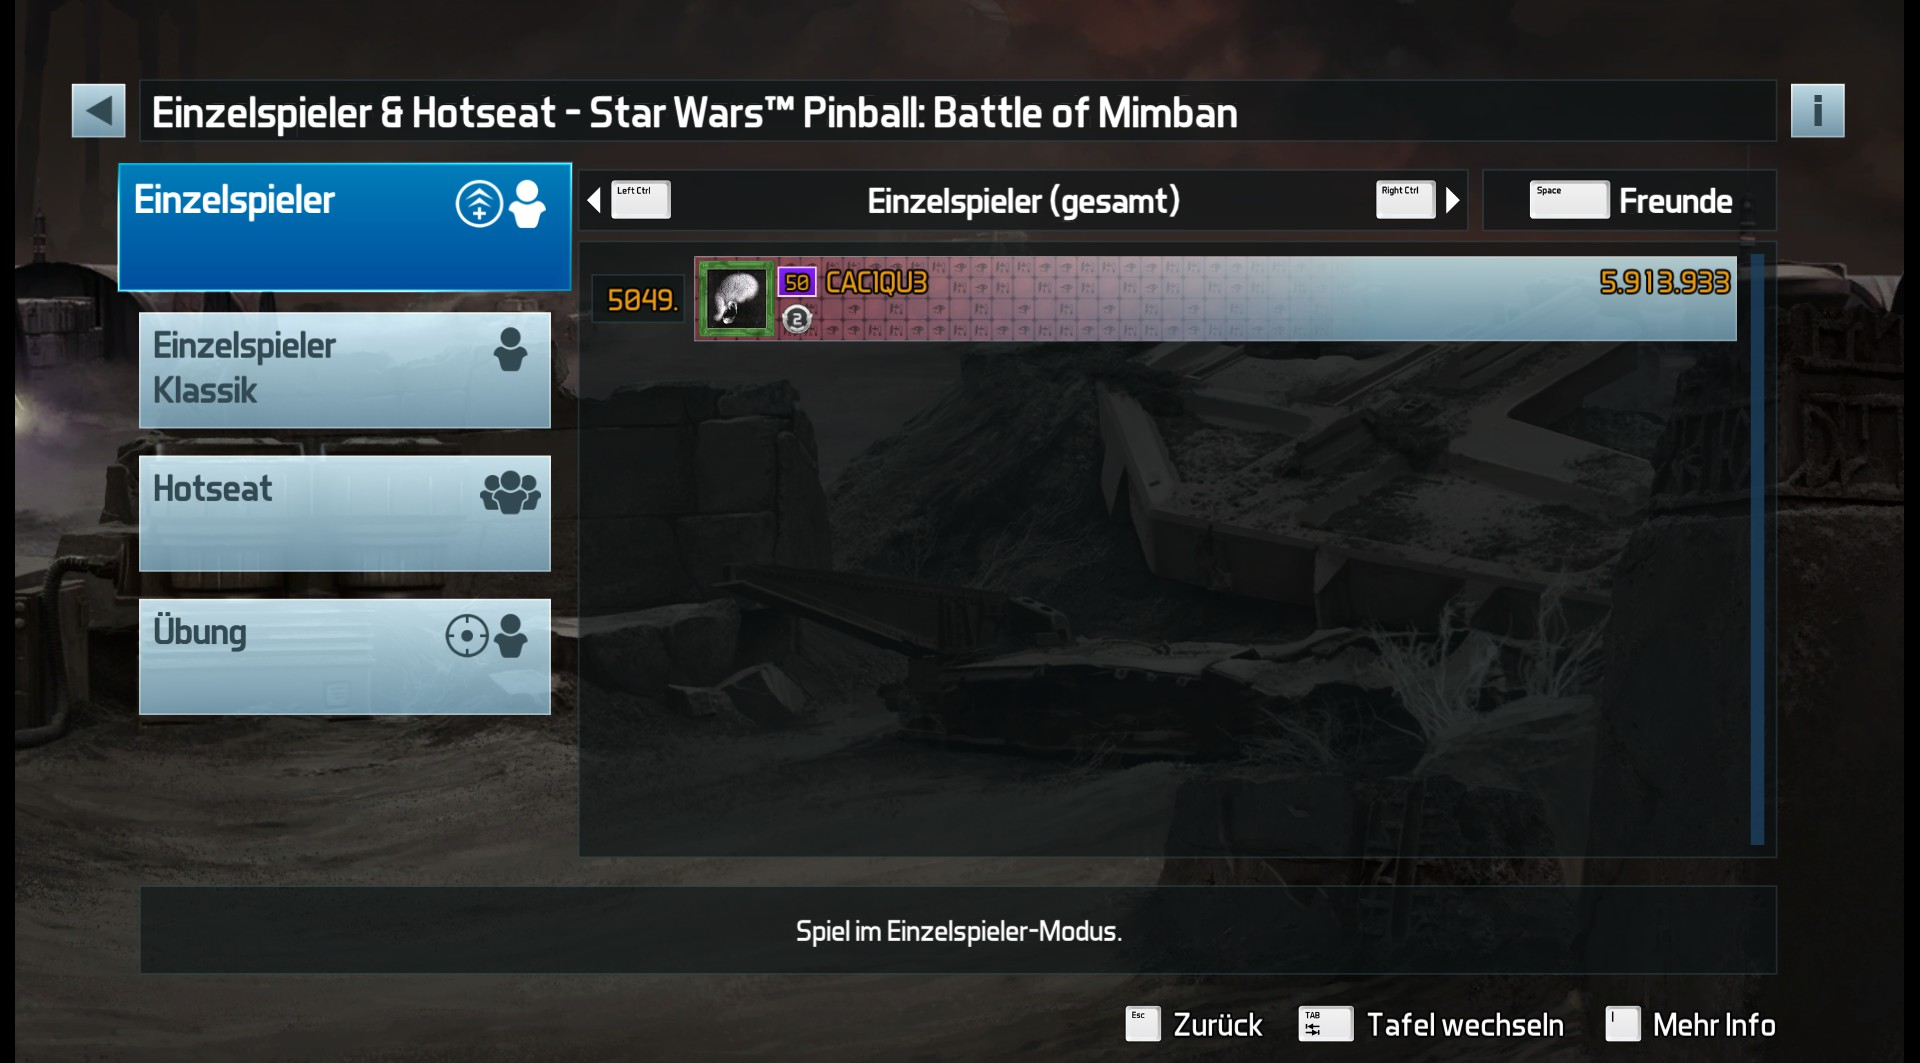 CAC1QU3: Pinball FX3: Star Wars Pinball: Battle Of Mimban (PC) 5,913,933 points on 2019-05-02 18:51:18